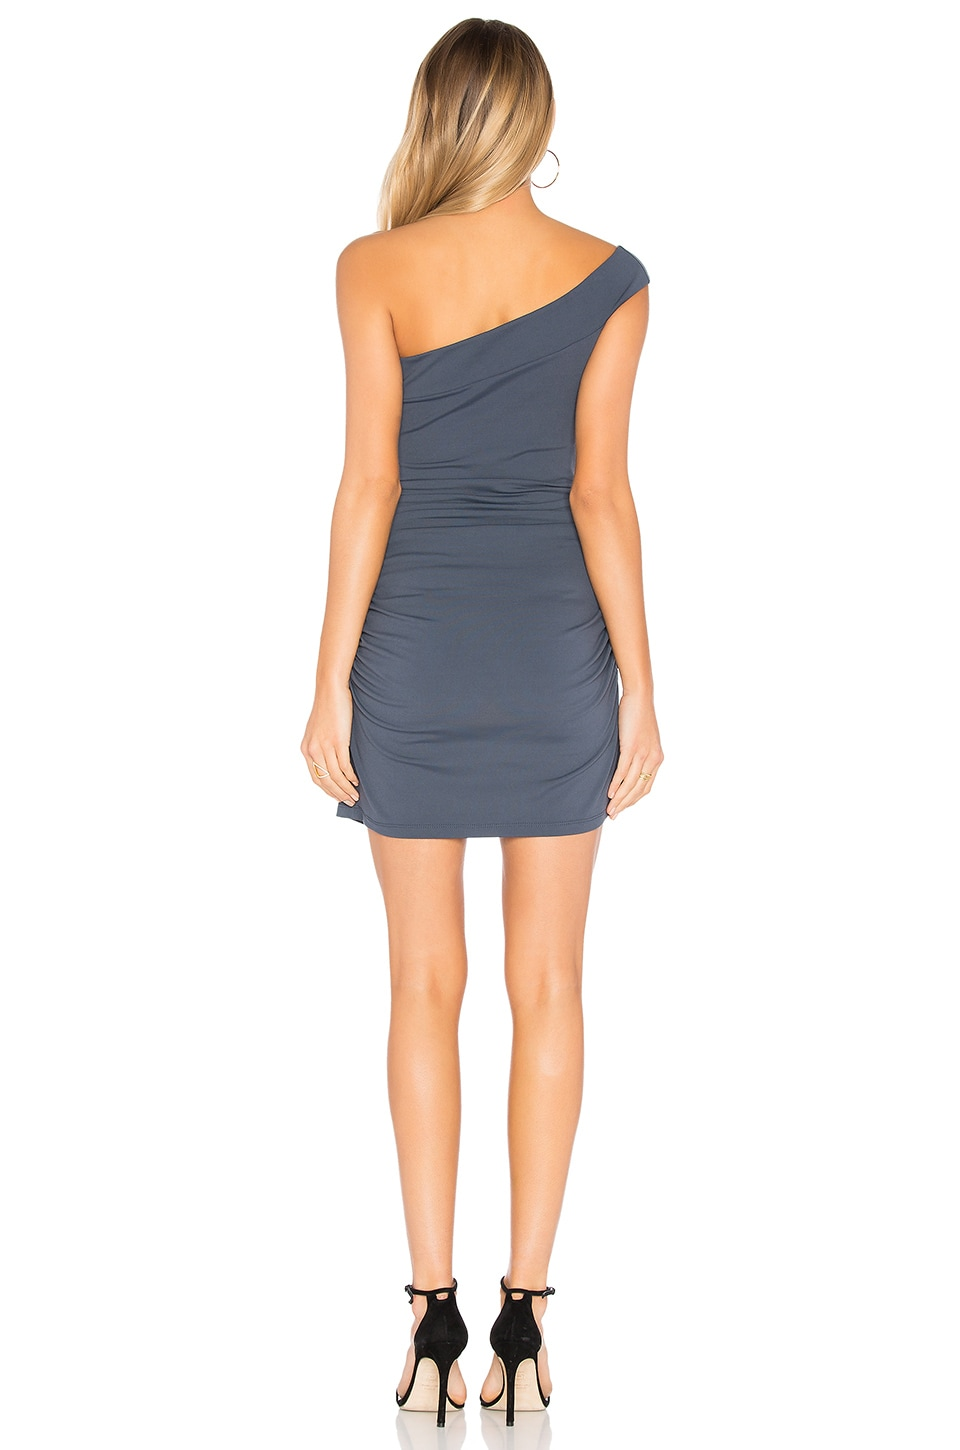 "Susana Monaco Clementine 16"" Mini Dress in Charcoal"